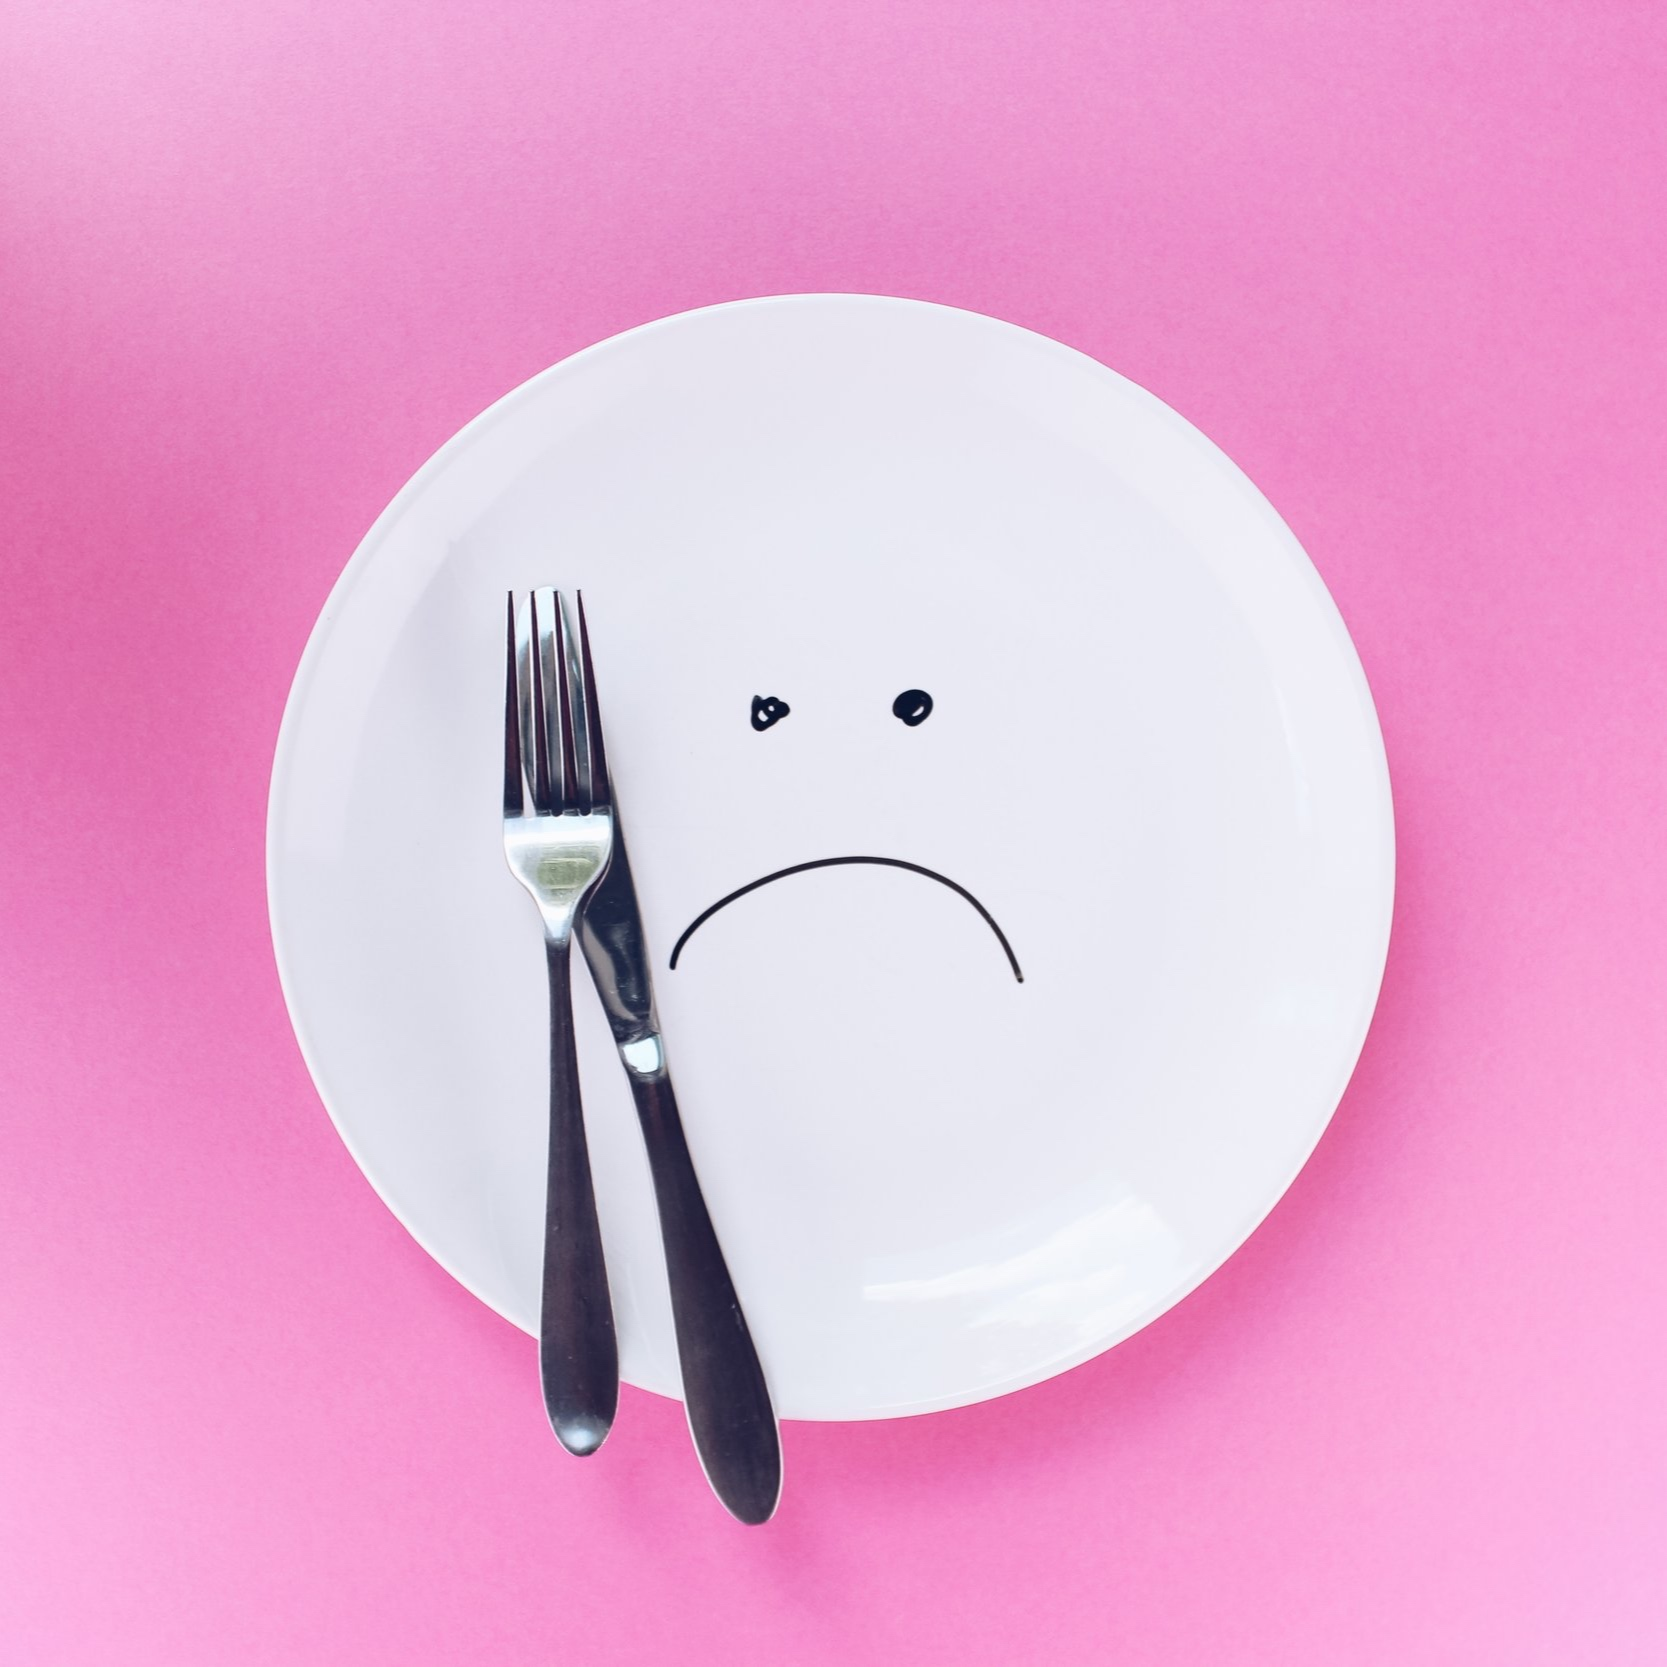 sad+plate+knife+and+fork.jpg